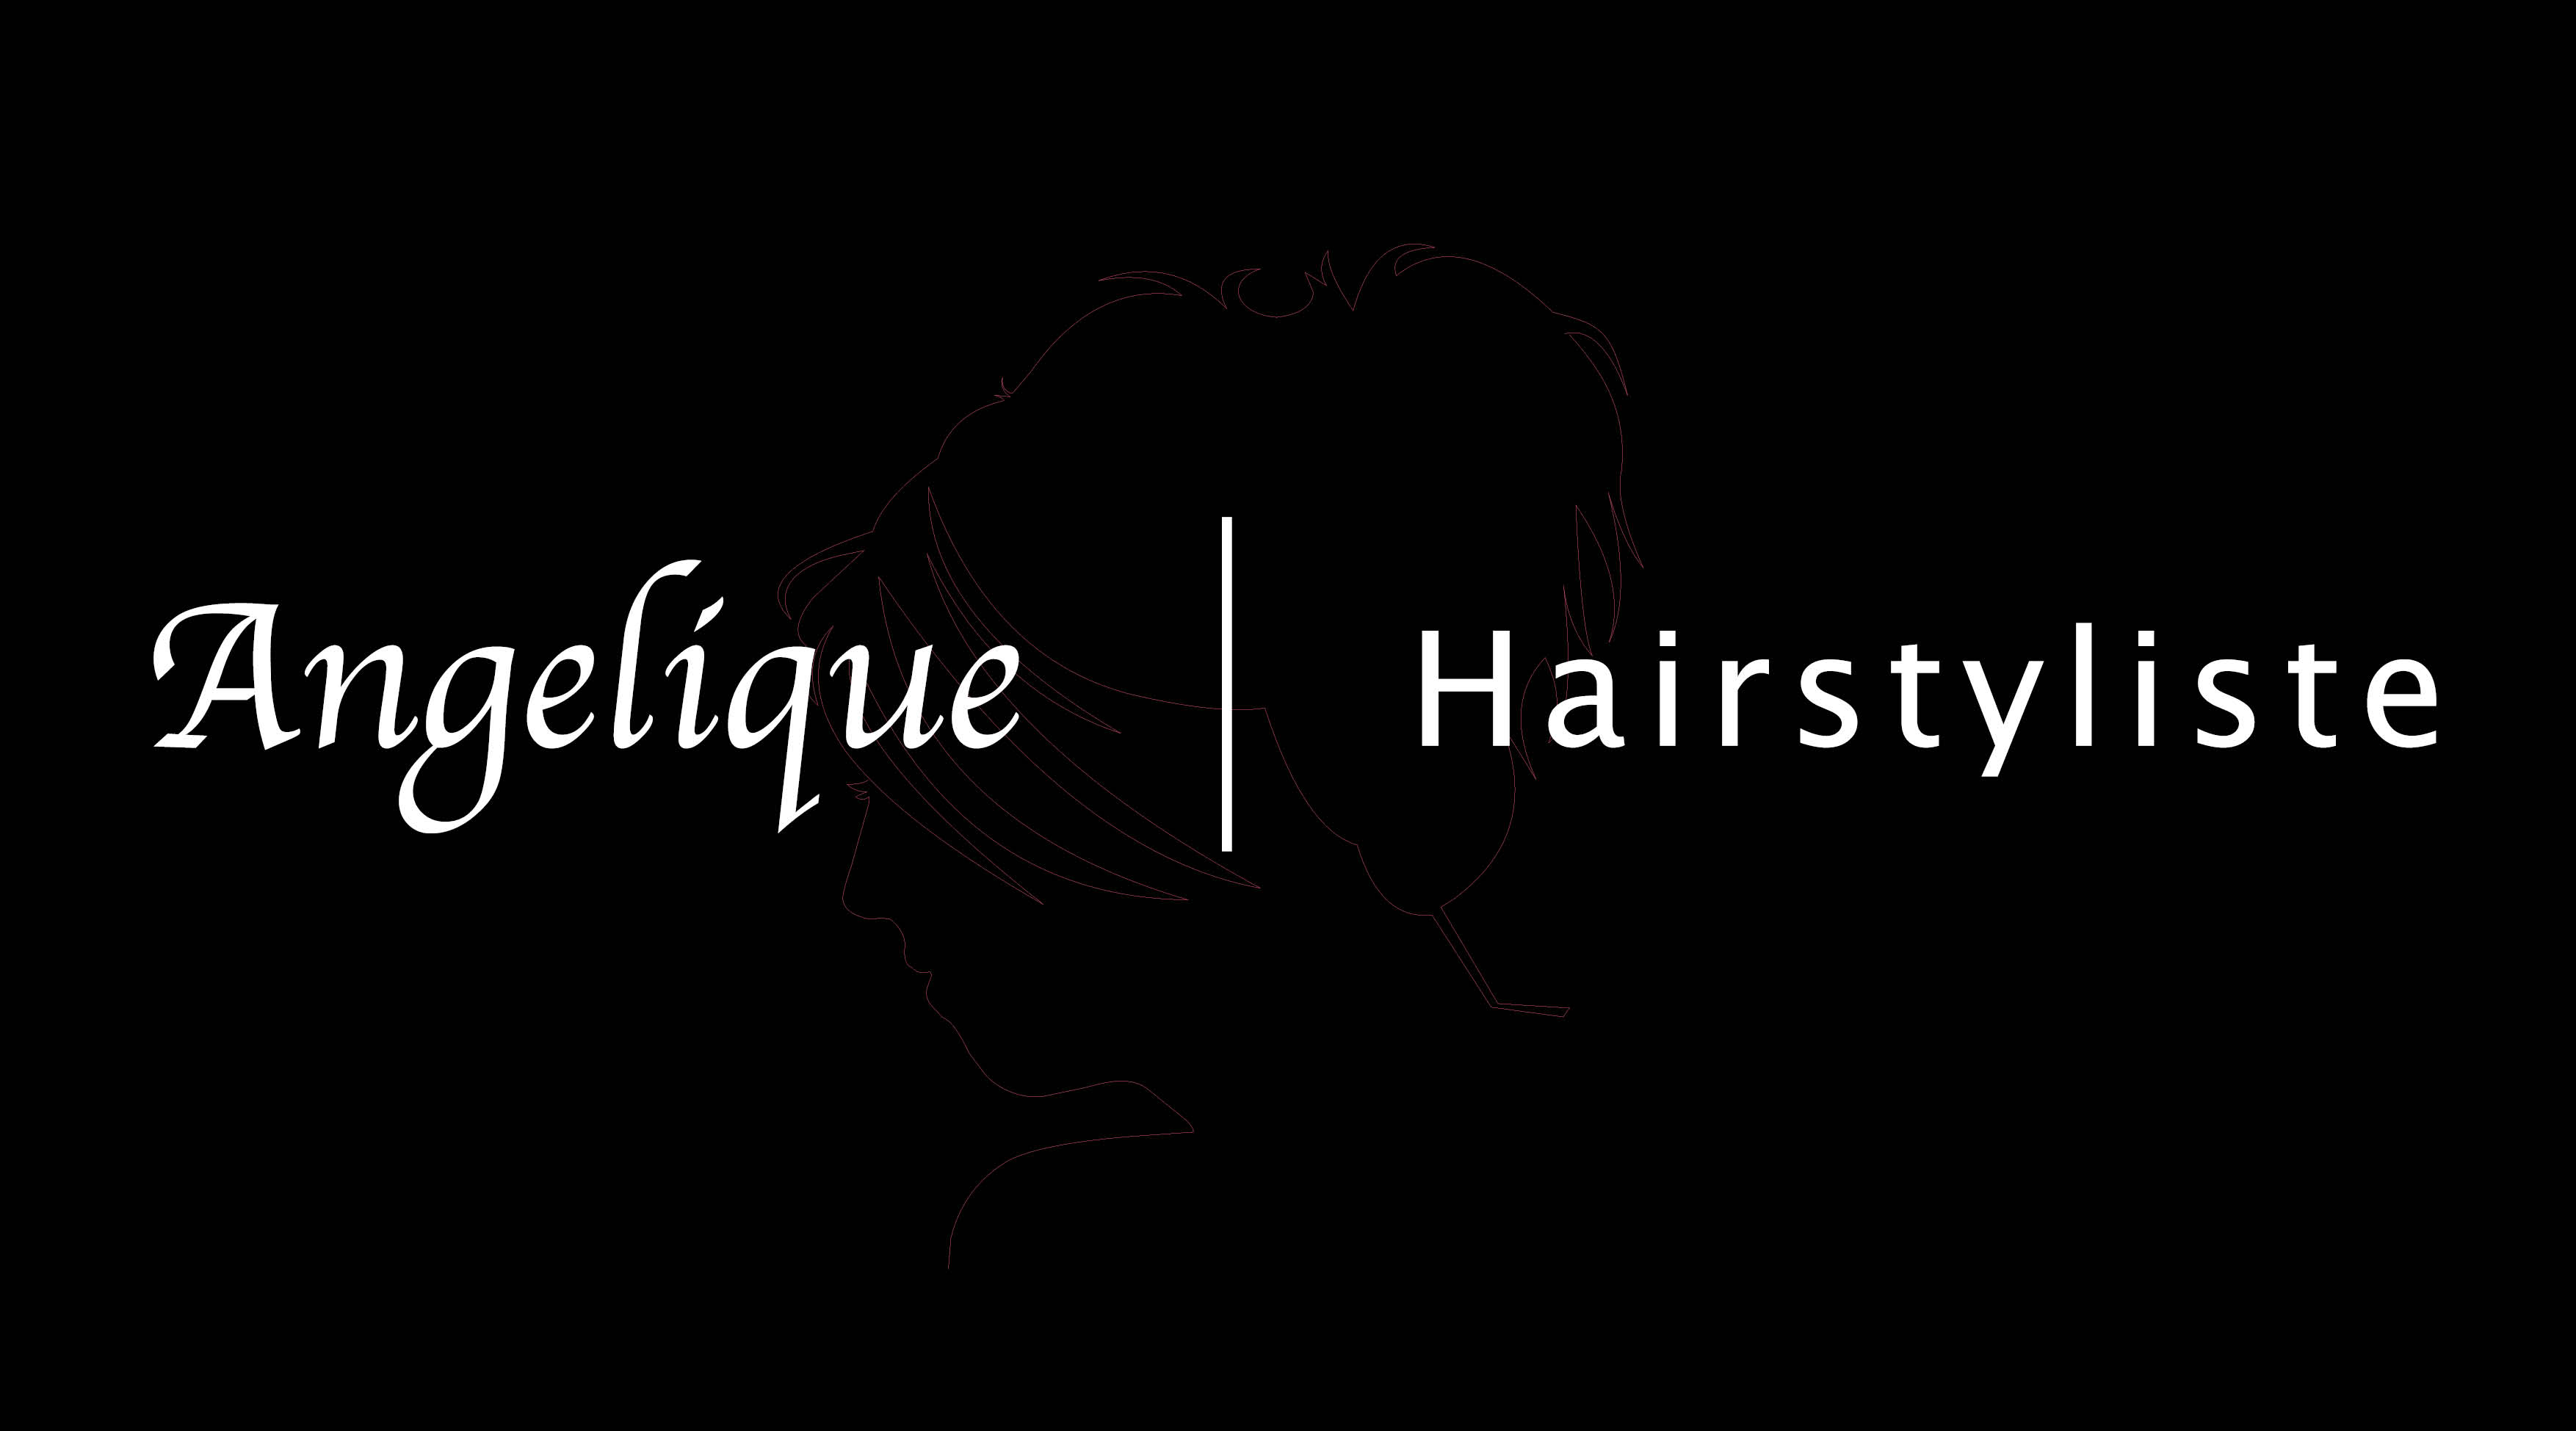 Angelique Hairstyliste